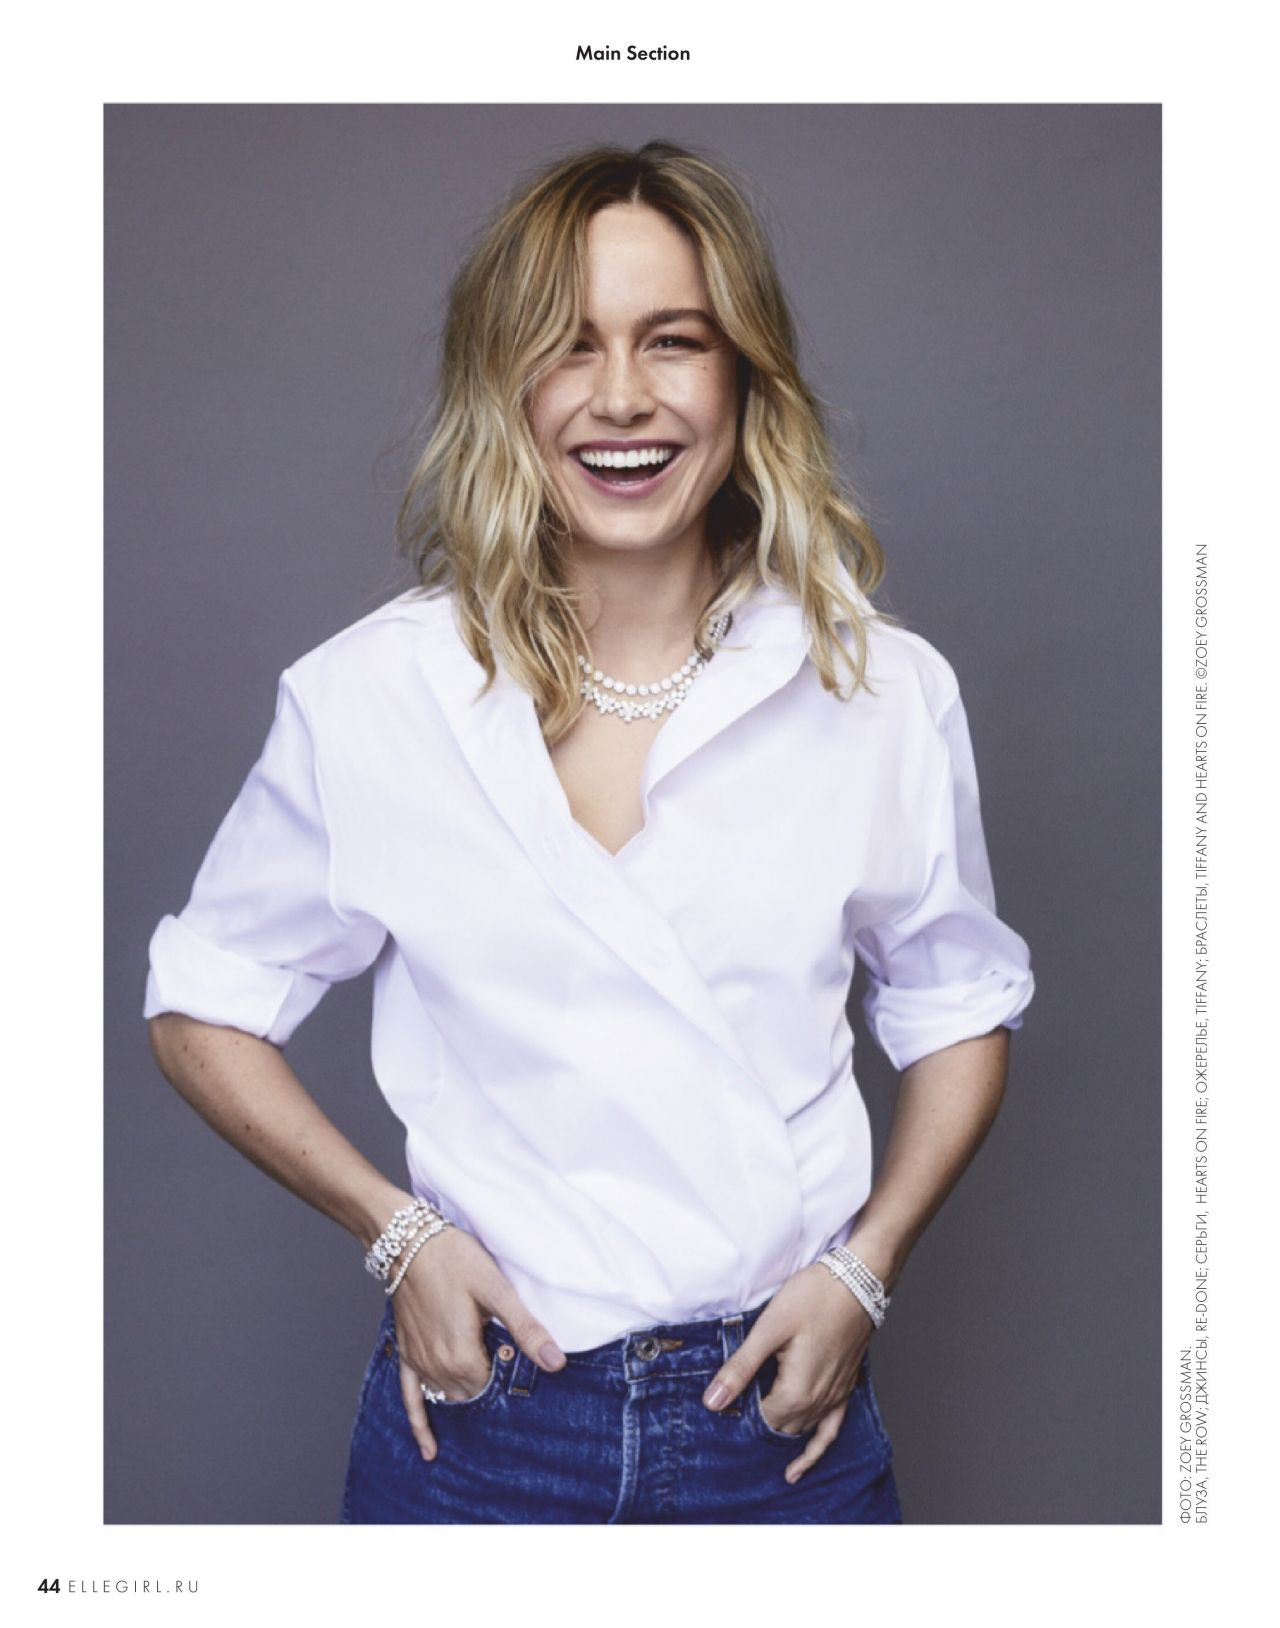 Brie Larson gorgeous in Elle Magazine :)